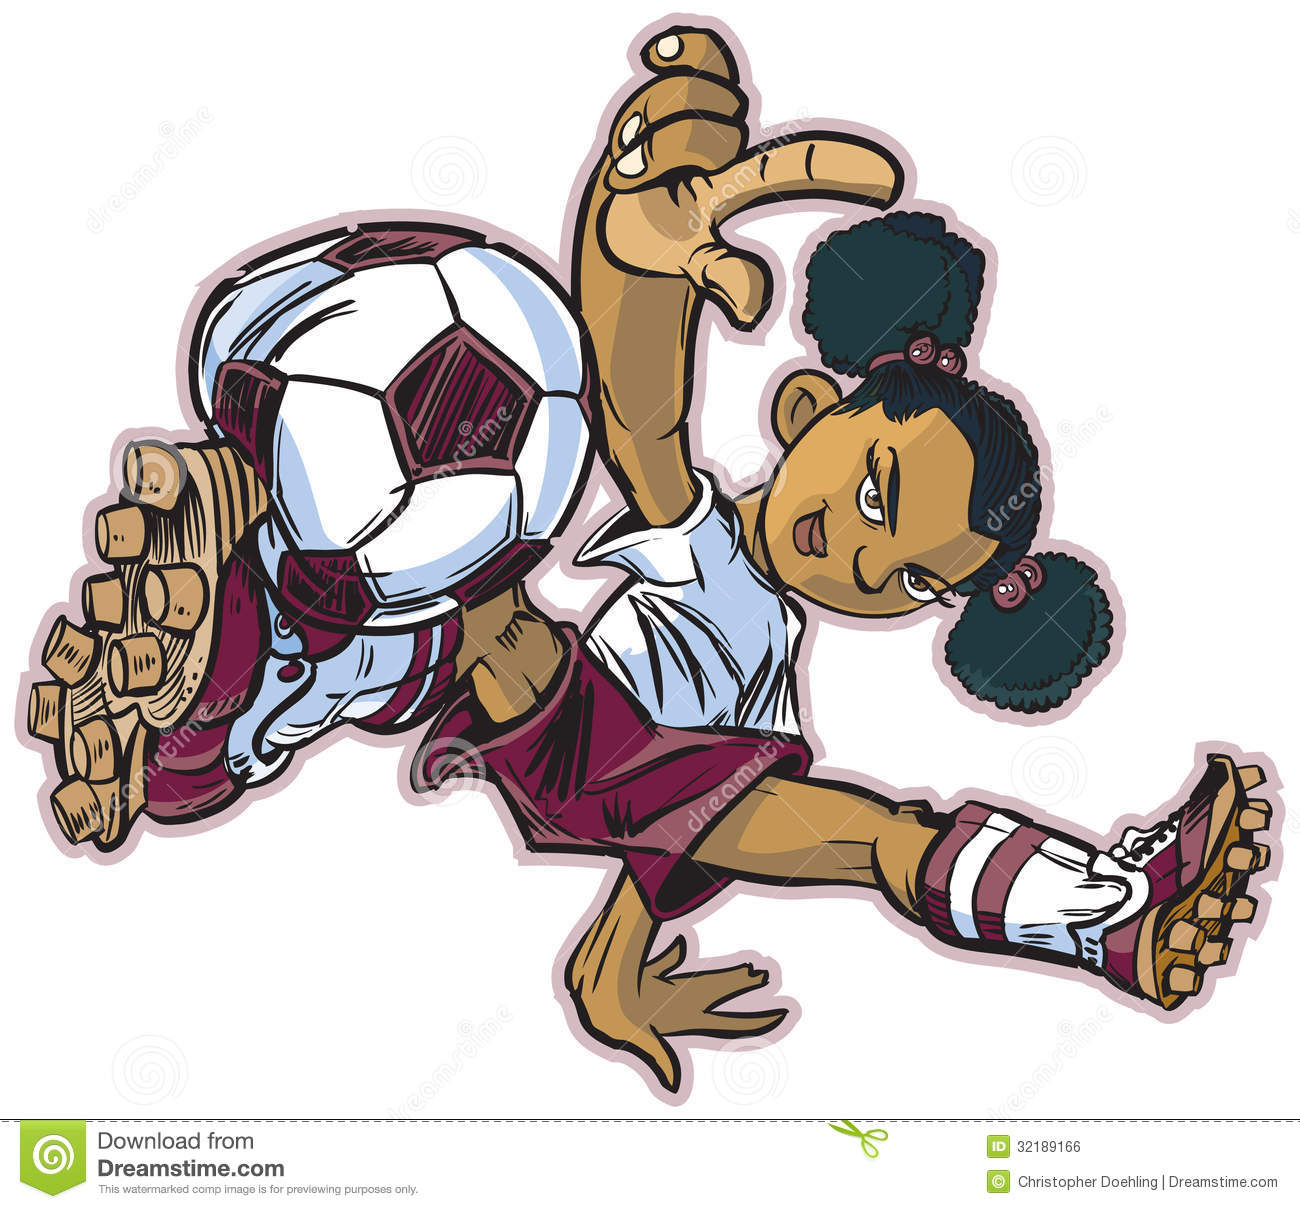 Vector Clip Art Cartoon Of An African Girl Using A Break Dancing Move